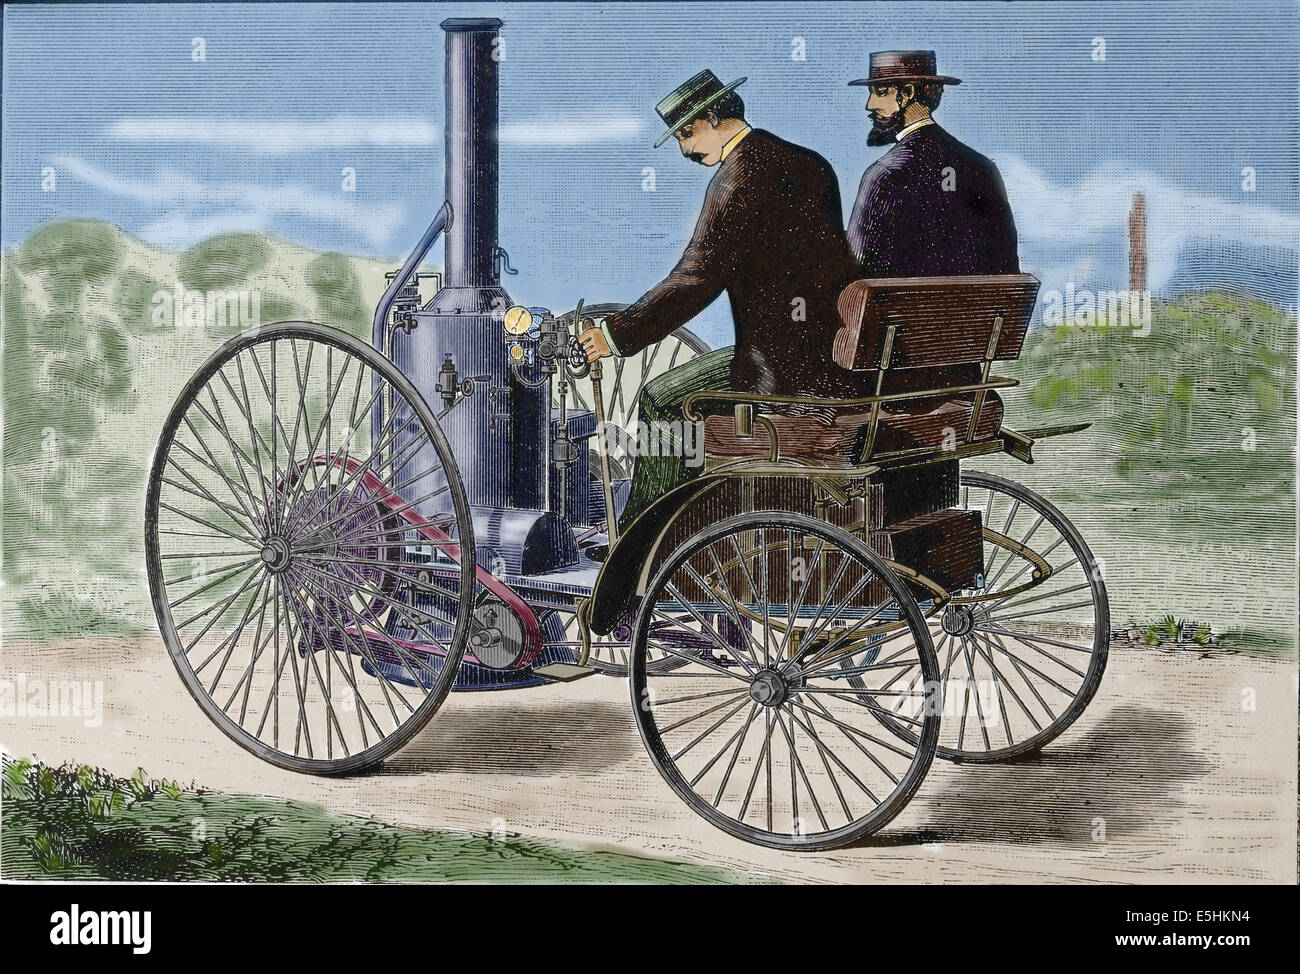 His Steam Vehicle Stock Photos & His Steam Vehicle Stock Images - Alamy